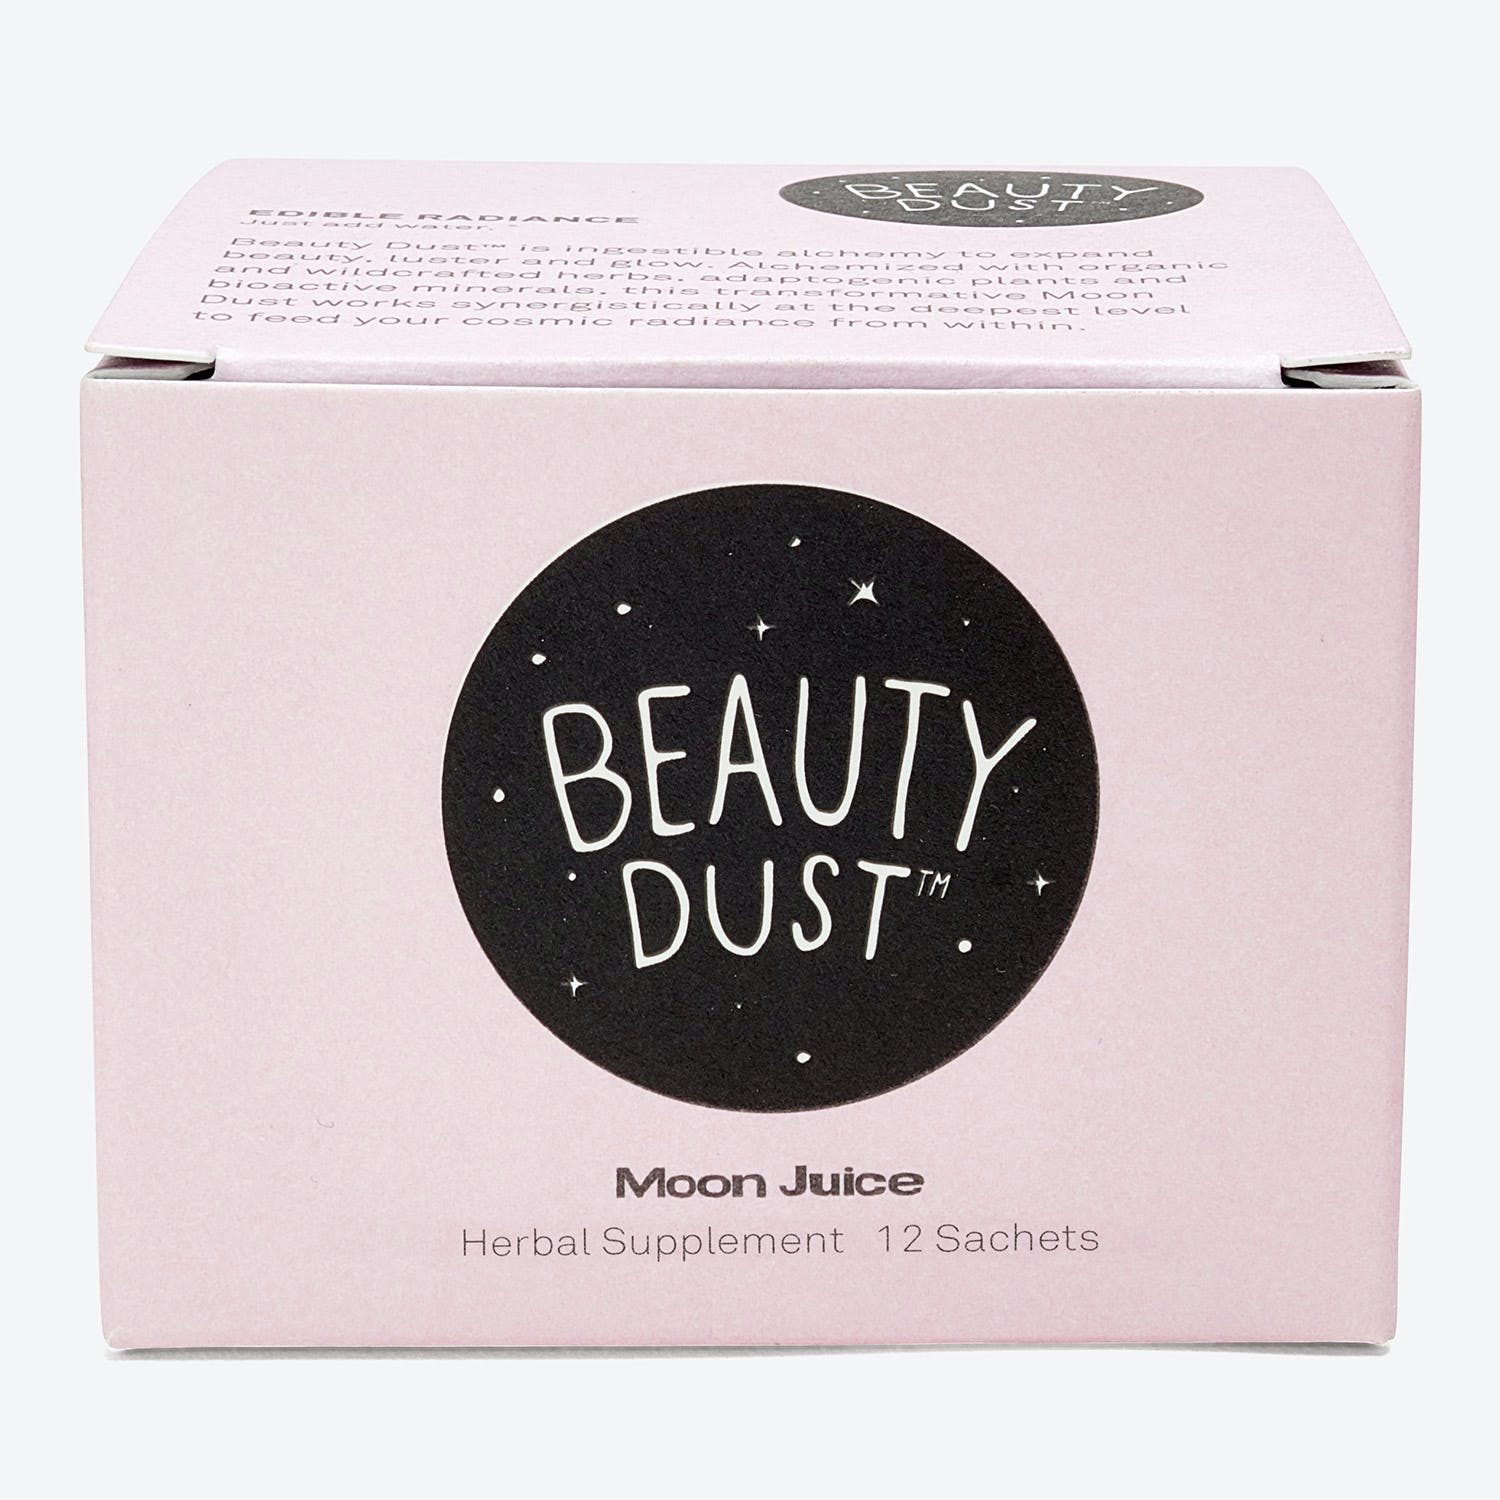 Moon Juice Beauty Dust Sachet Box